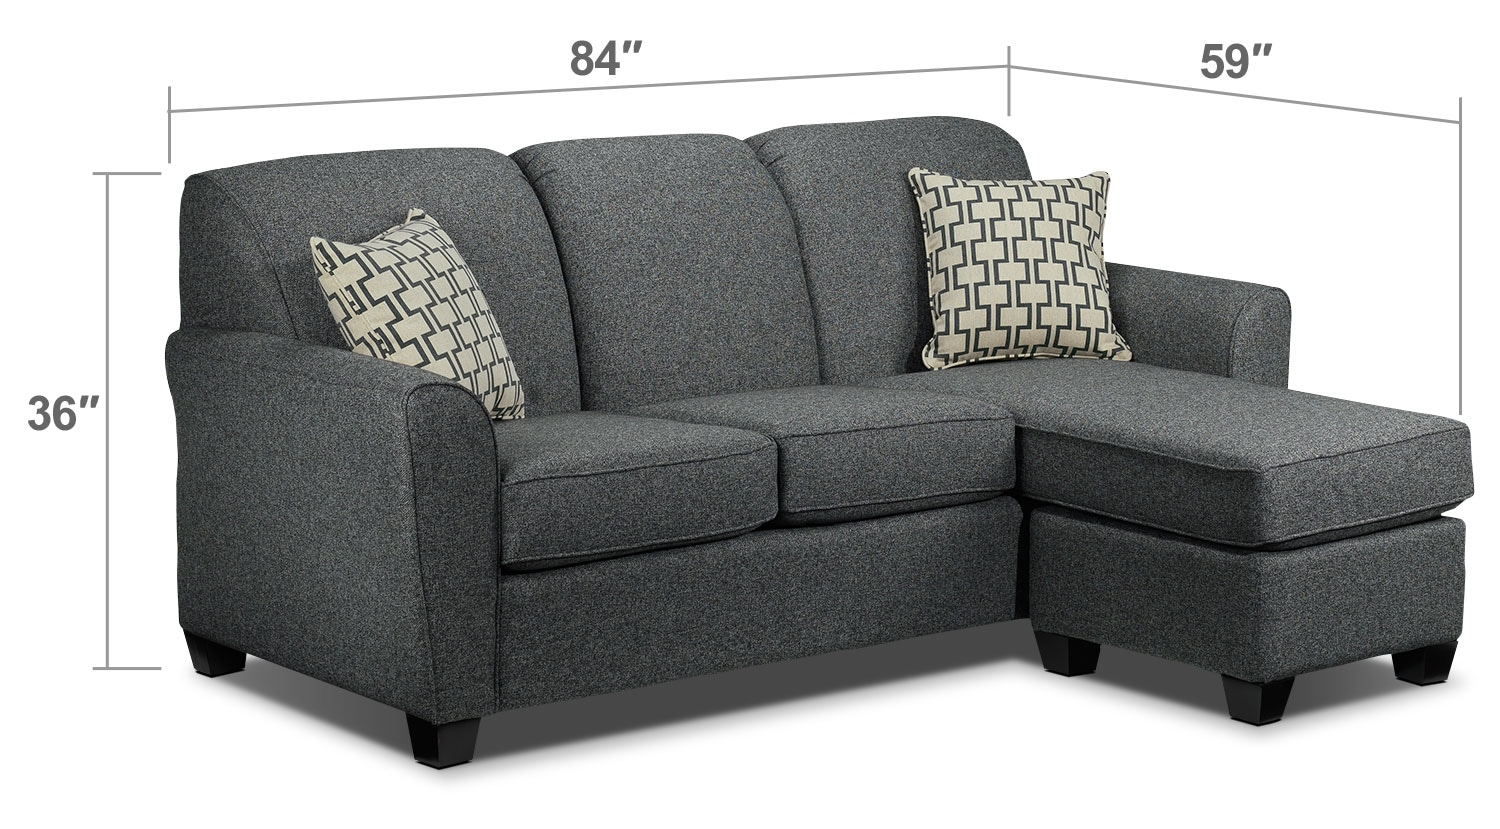 Living Room Furniture - Ashby Chaise Sofa - Grey